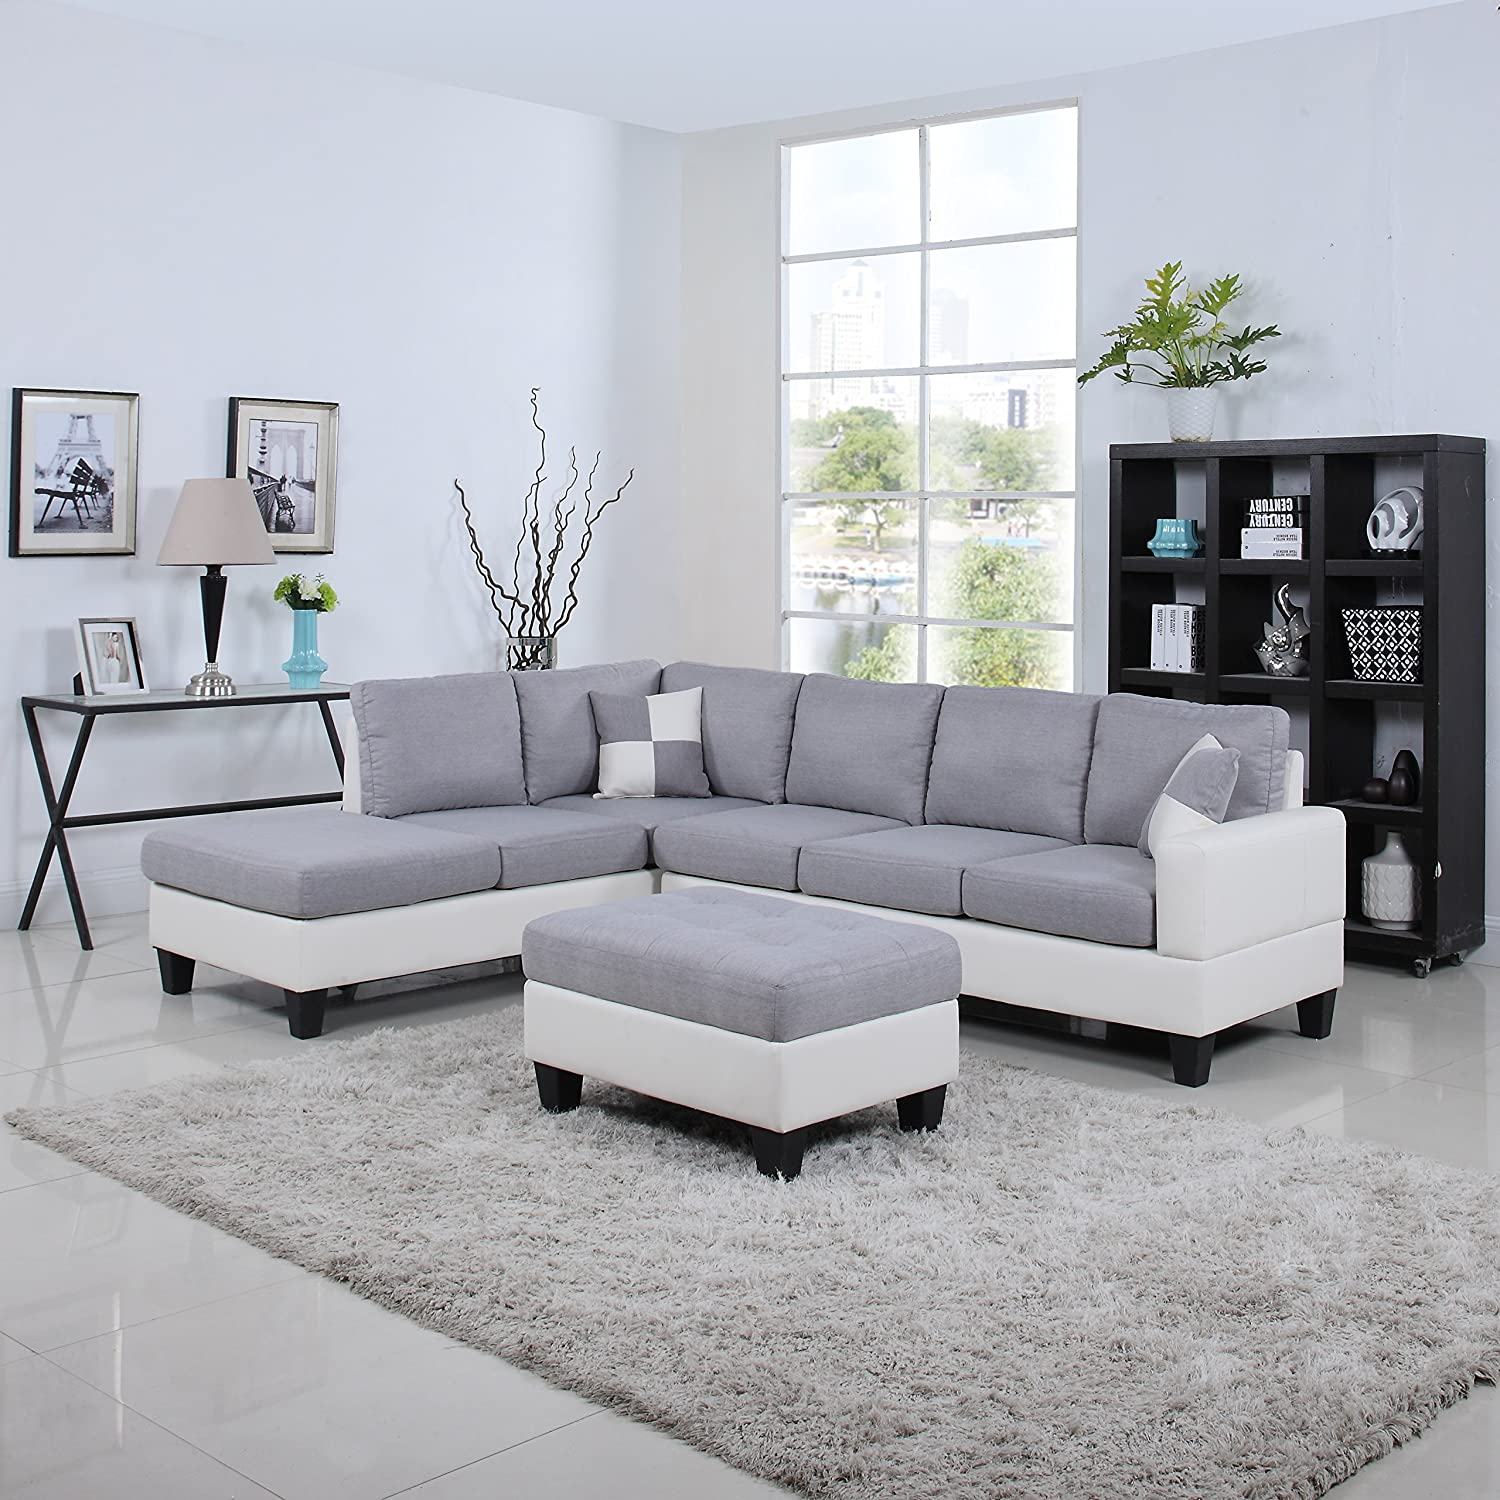 Amazon.com Classic Two Tone Large Linen Fabric and Bonded Leather Living Room Sectional Sofa (White / Light Grey) Kitchen u0026 Dining : two tone sectional - Sectionals, Sofas & Couches